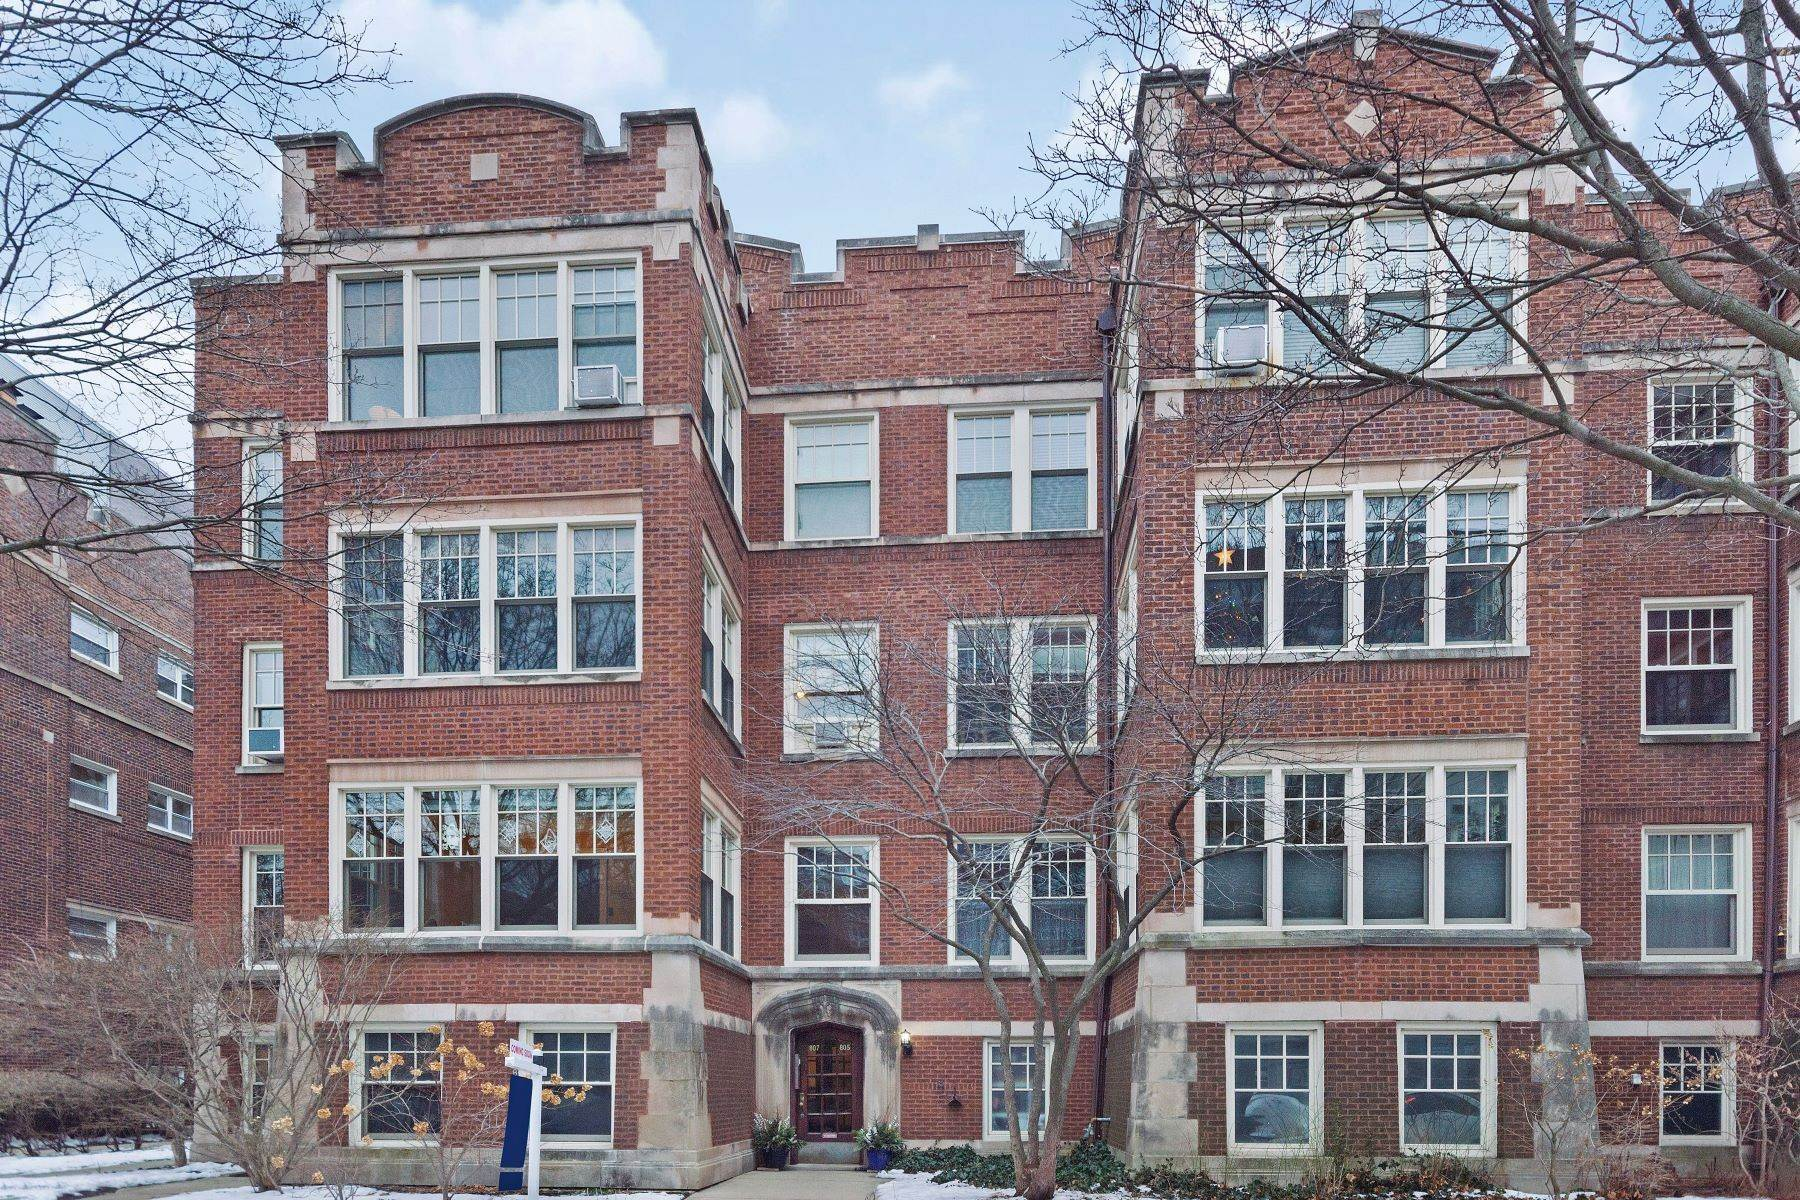 Single Family Homes for Sale at Southeast Evanston Condo 807 Hinman Avenue, Unit 3N Evanston, Illinois 60202 United States